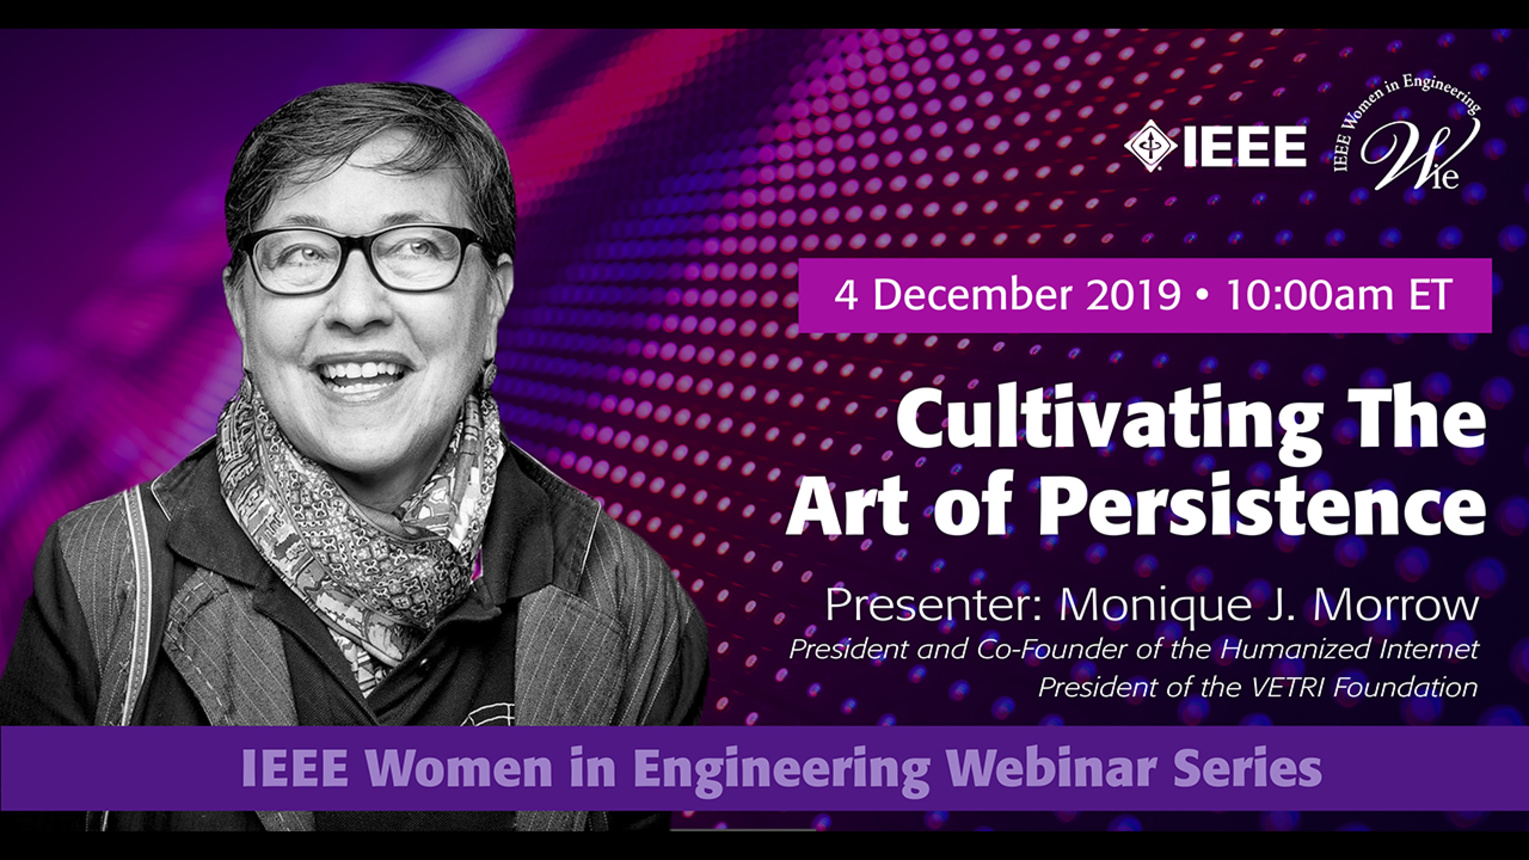 Cultivating the Art of Persistence - Monique Morrow - IEEE WIE Webinar Series